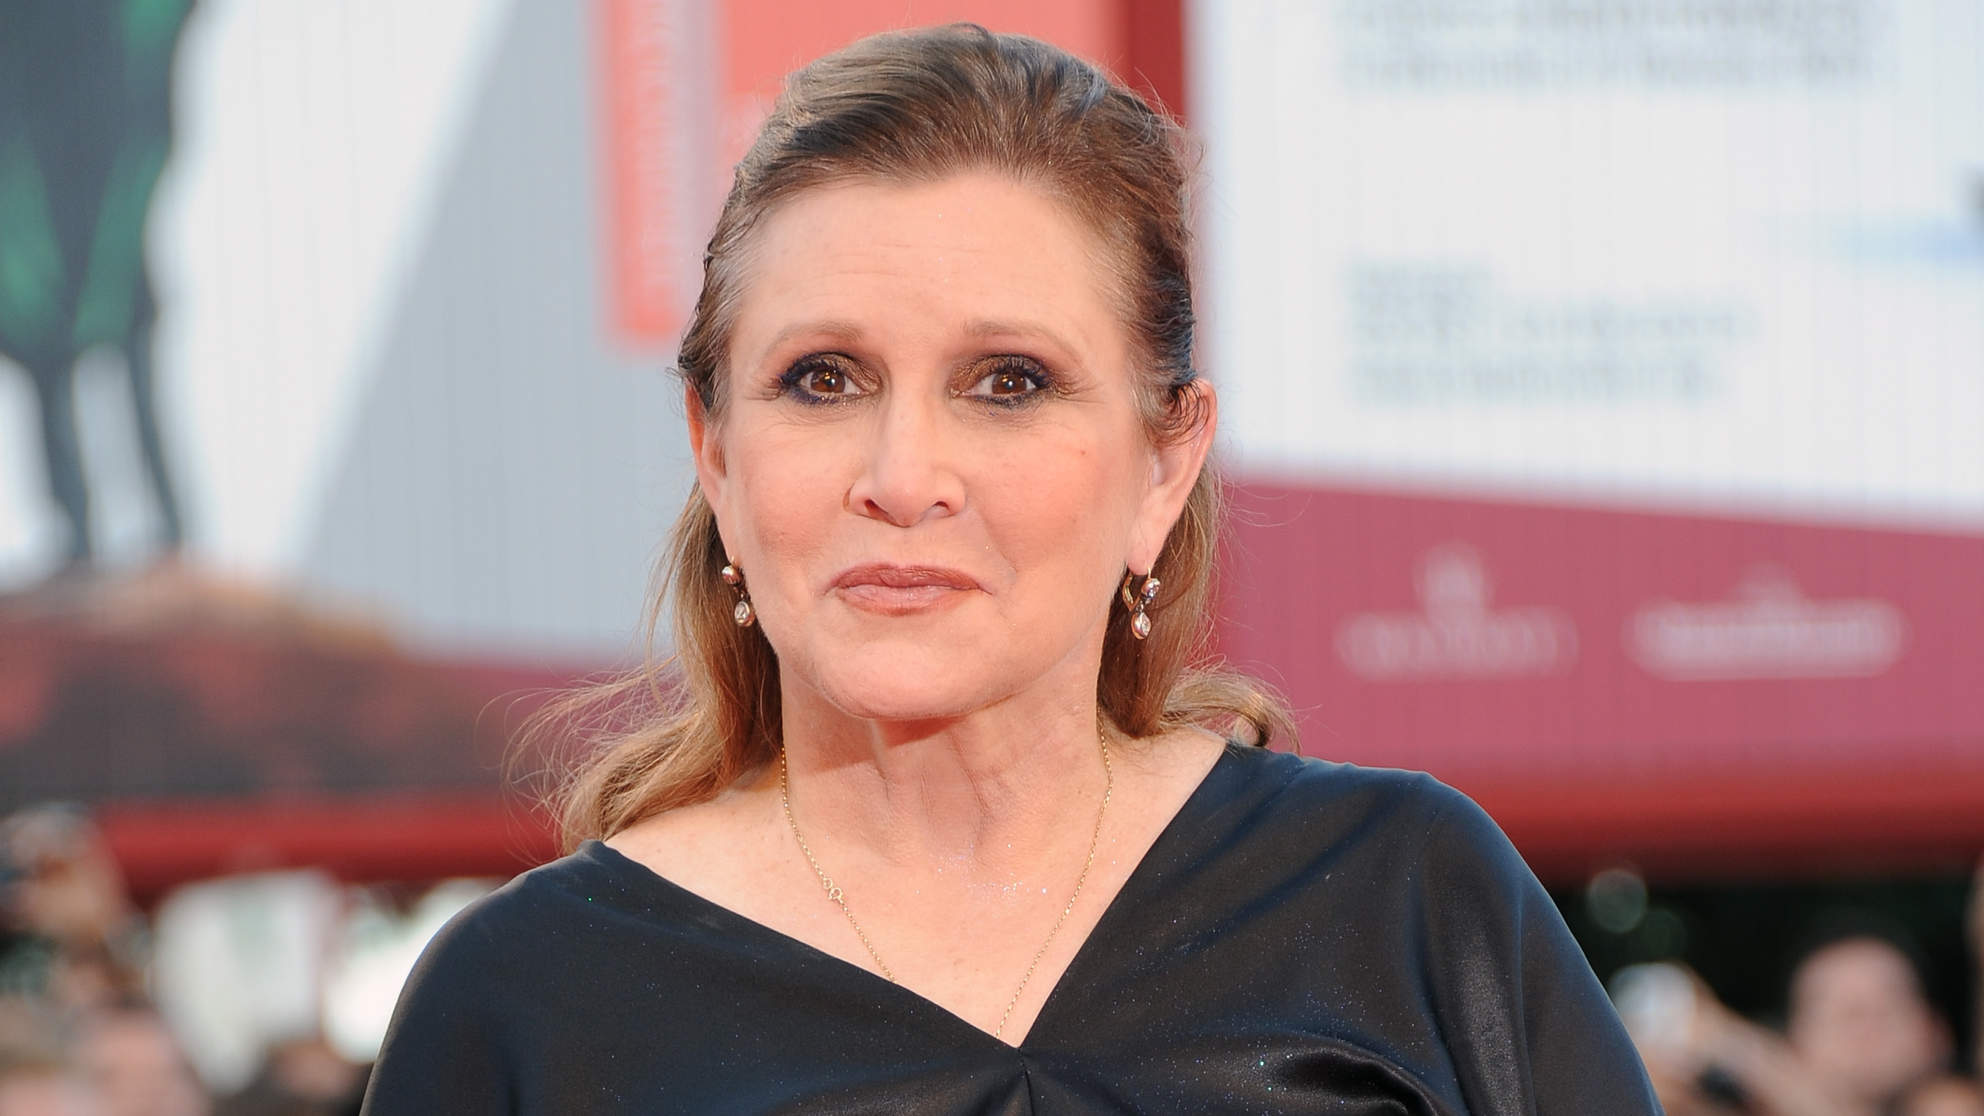 Carrie Fisher Once Sent a Cow's Tongue to a Producer After He Sexually Assaulted Her Friend